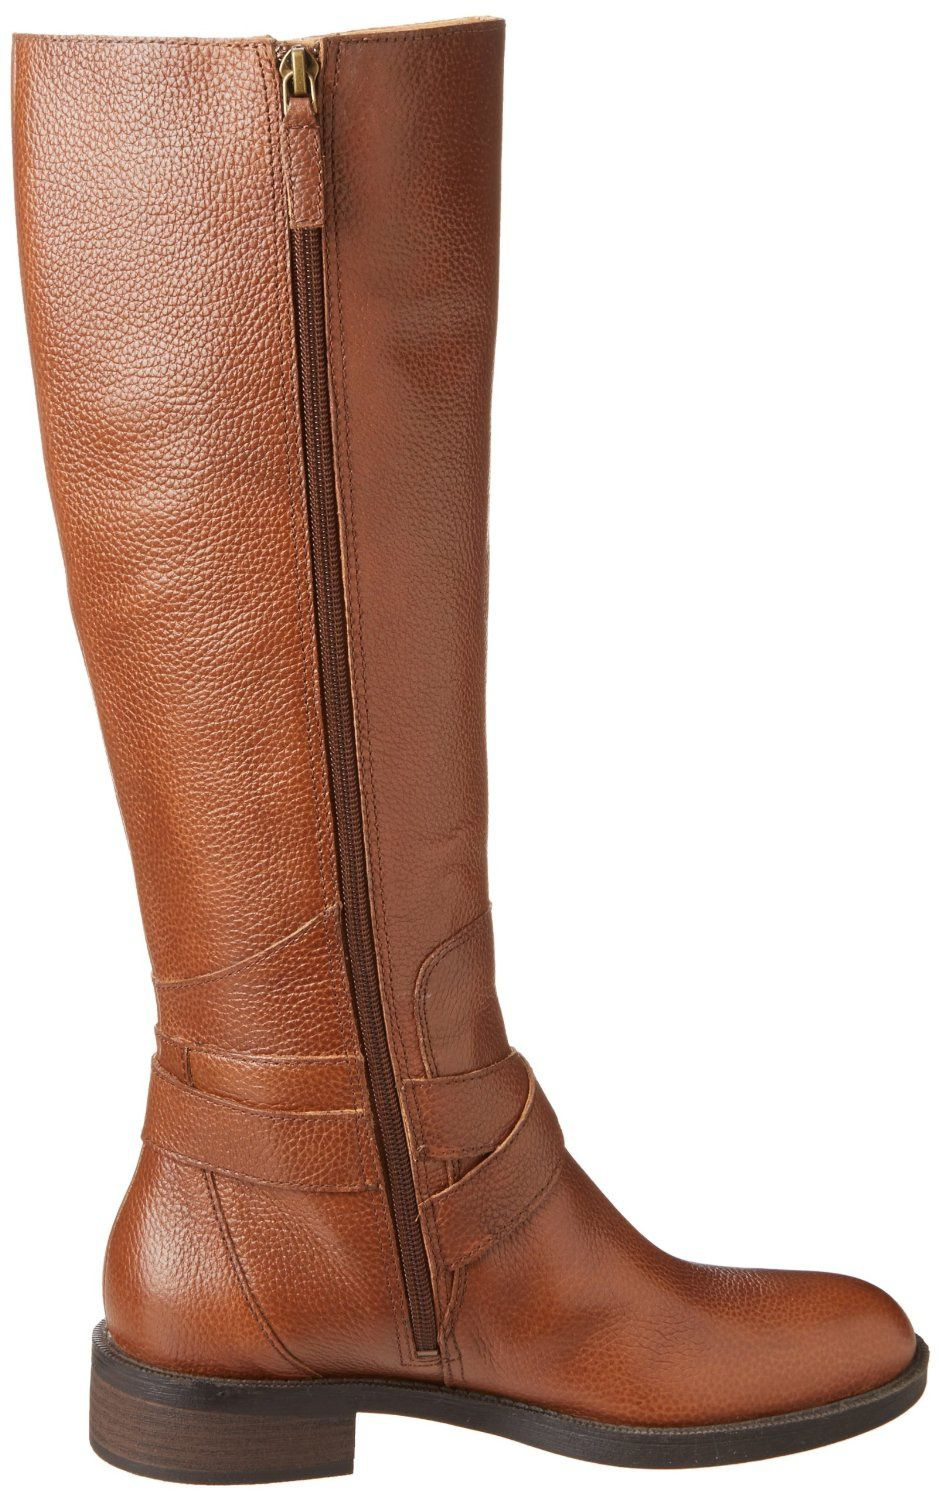 Enzo Angiolini: Women Sporty and Classy Boot